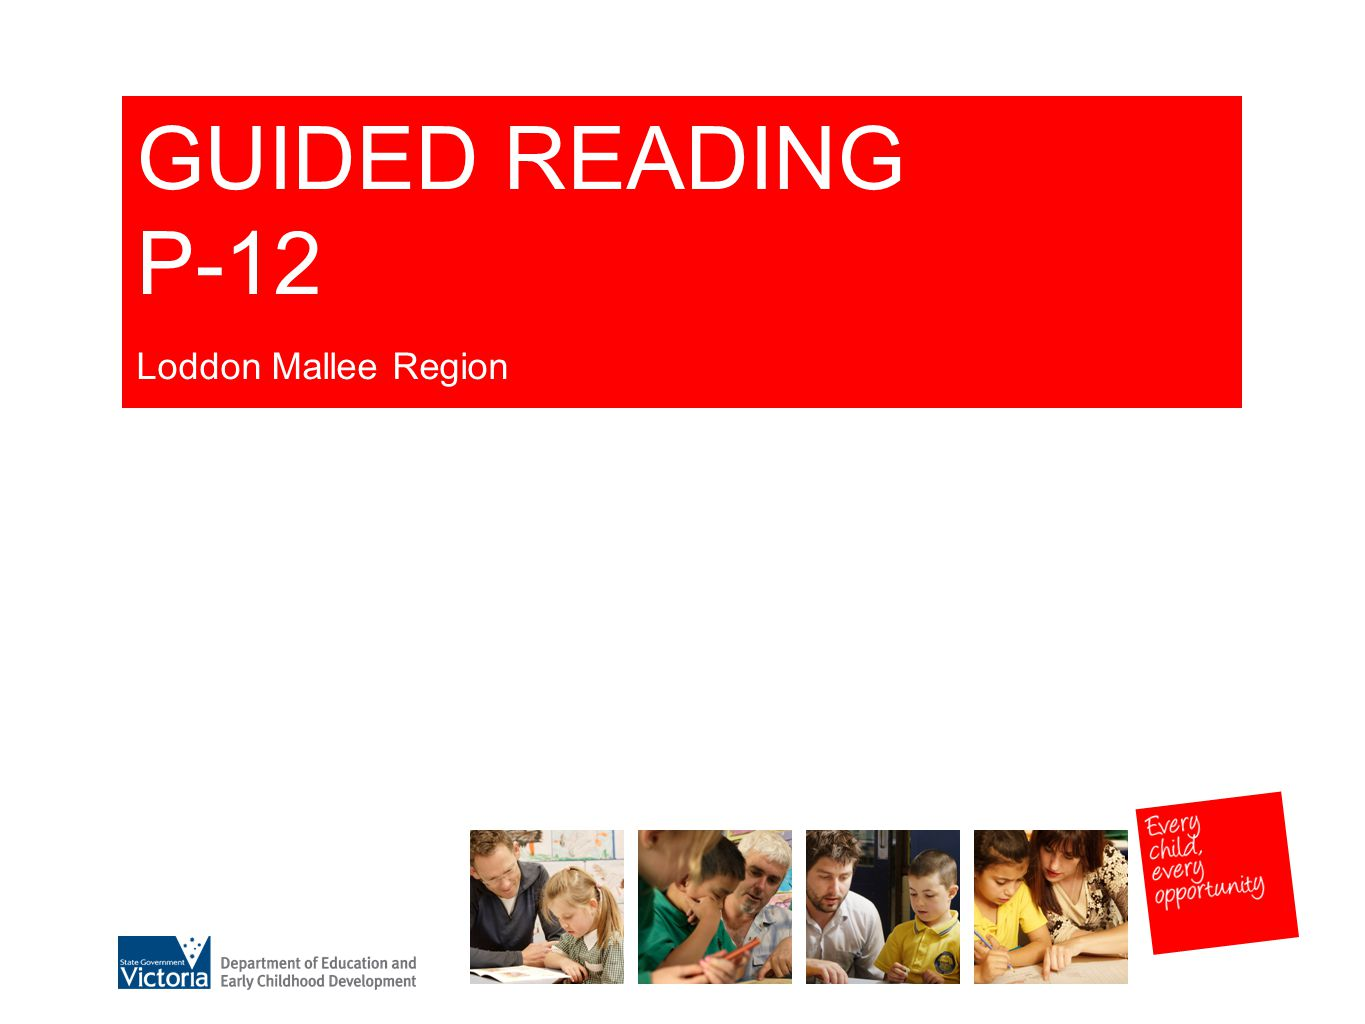 GUIDED READING P-12 Loddon Mallee Region